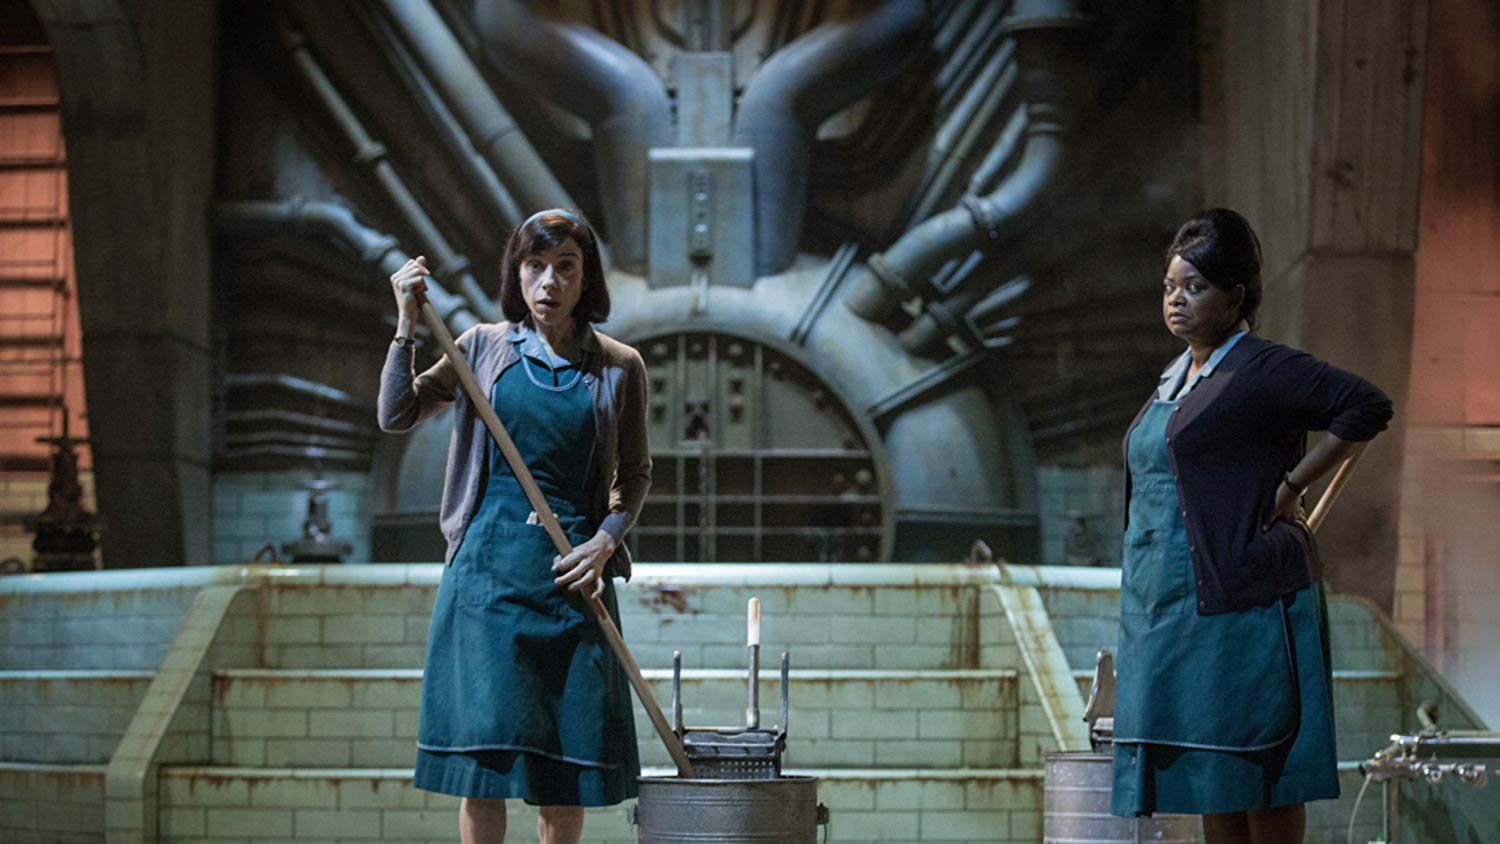 The Shape Of Water Review - OC Movie Reviews - Movie Reviews, Movie News, Documentary Reviews, Short Films, Short Film Reviews, Trailers, Movie Trailers, Interviews, film reviews, film news, hollywood, indie films, documentaries